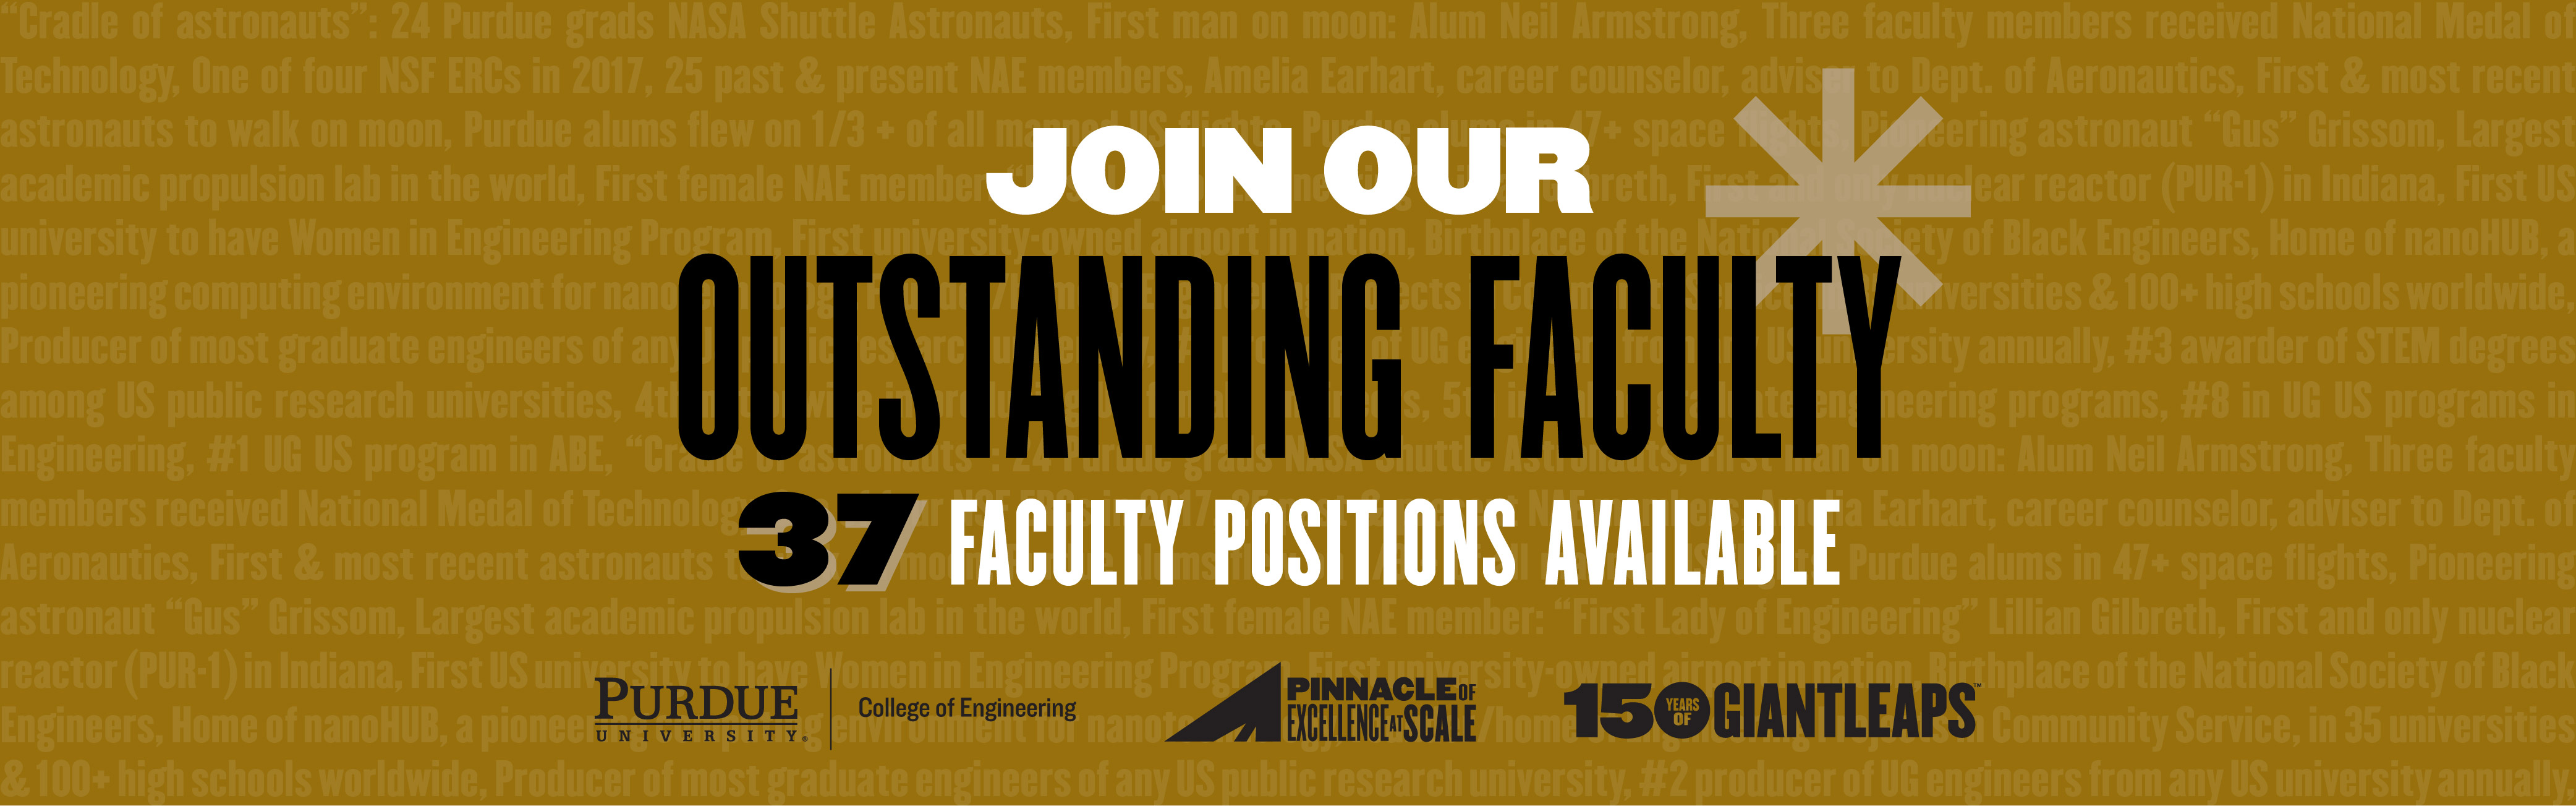 Join Our Outstanding Faculty - 37 Faculty Positions Available